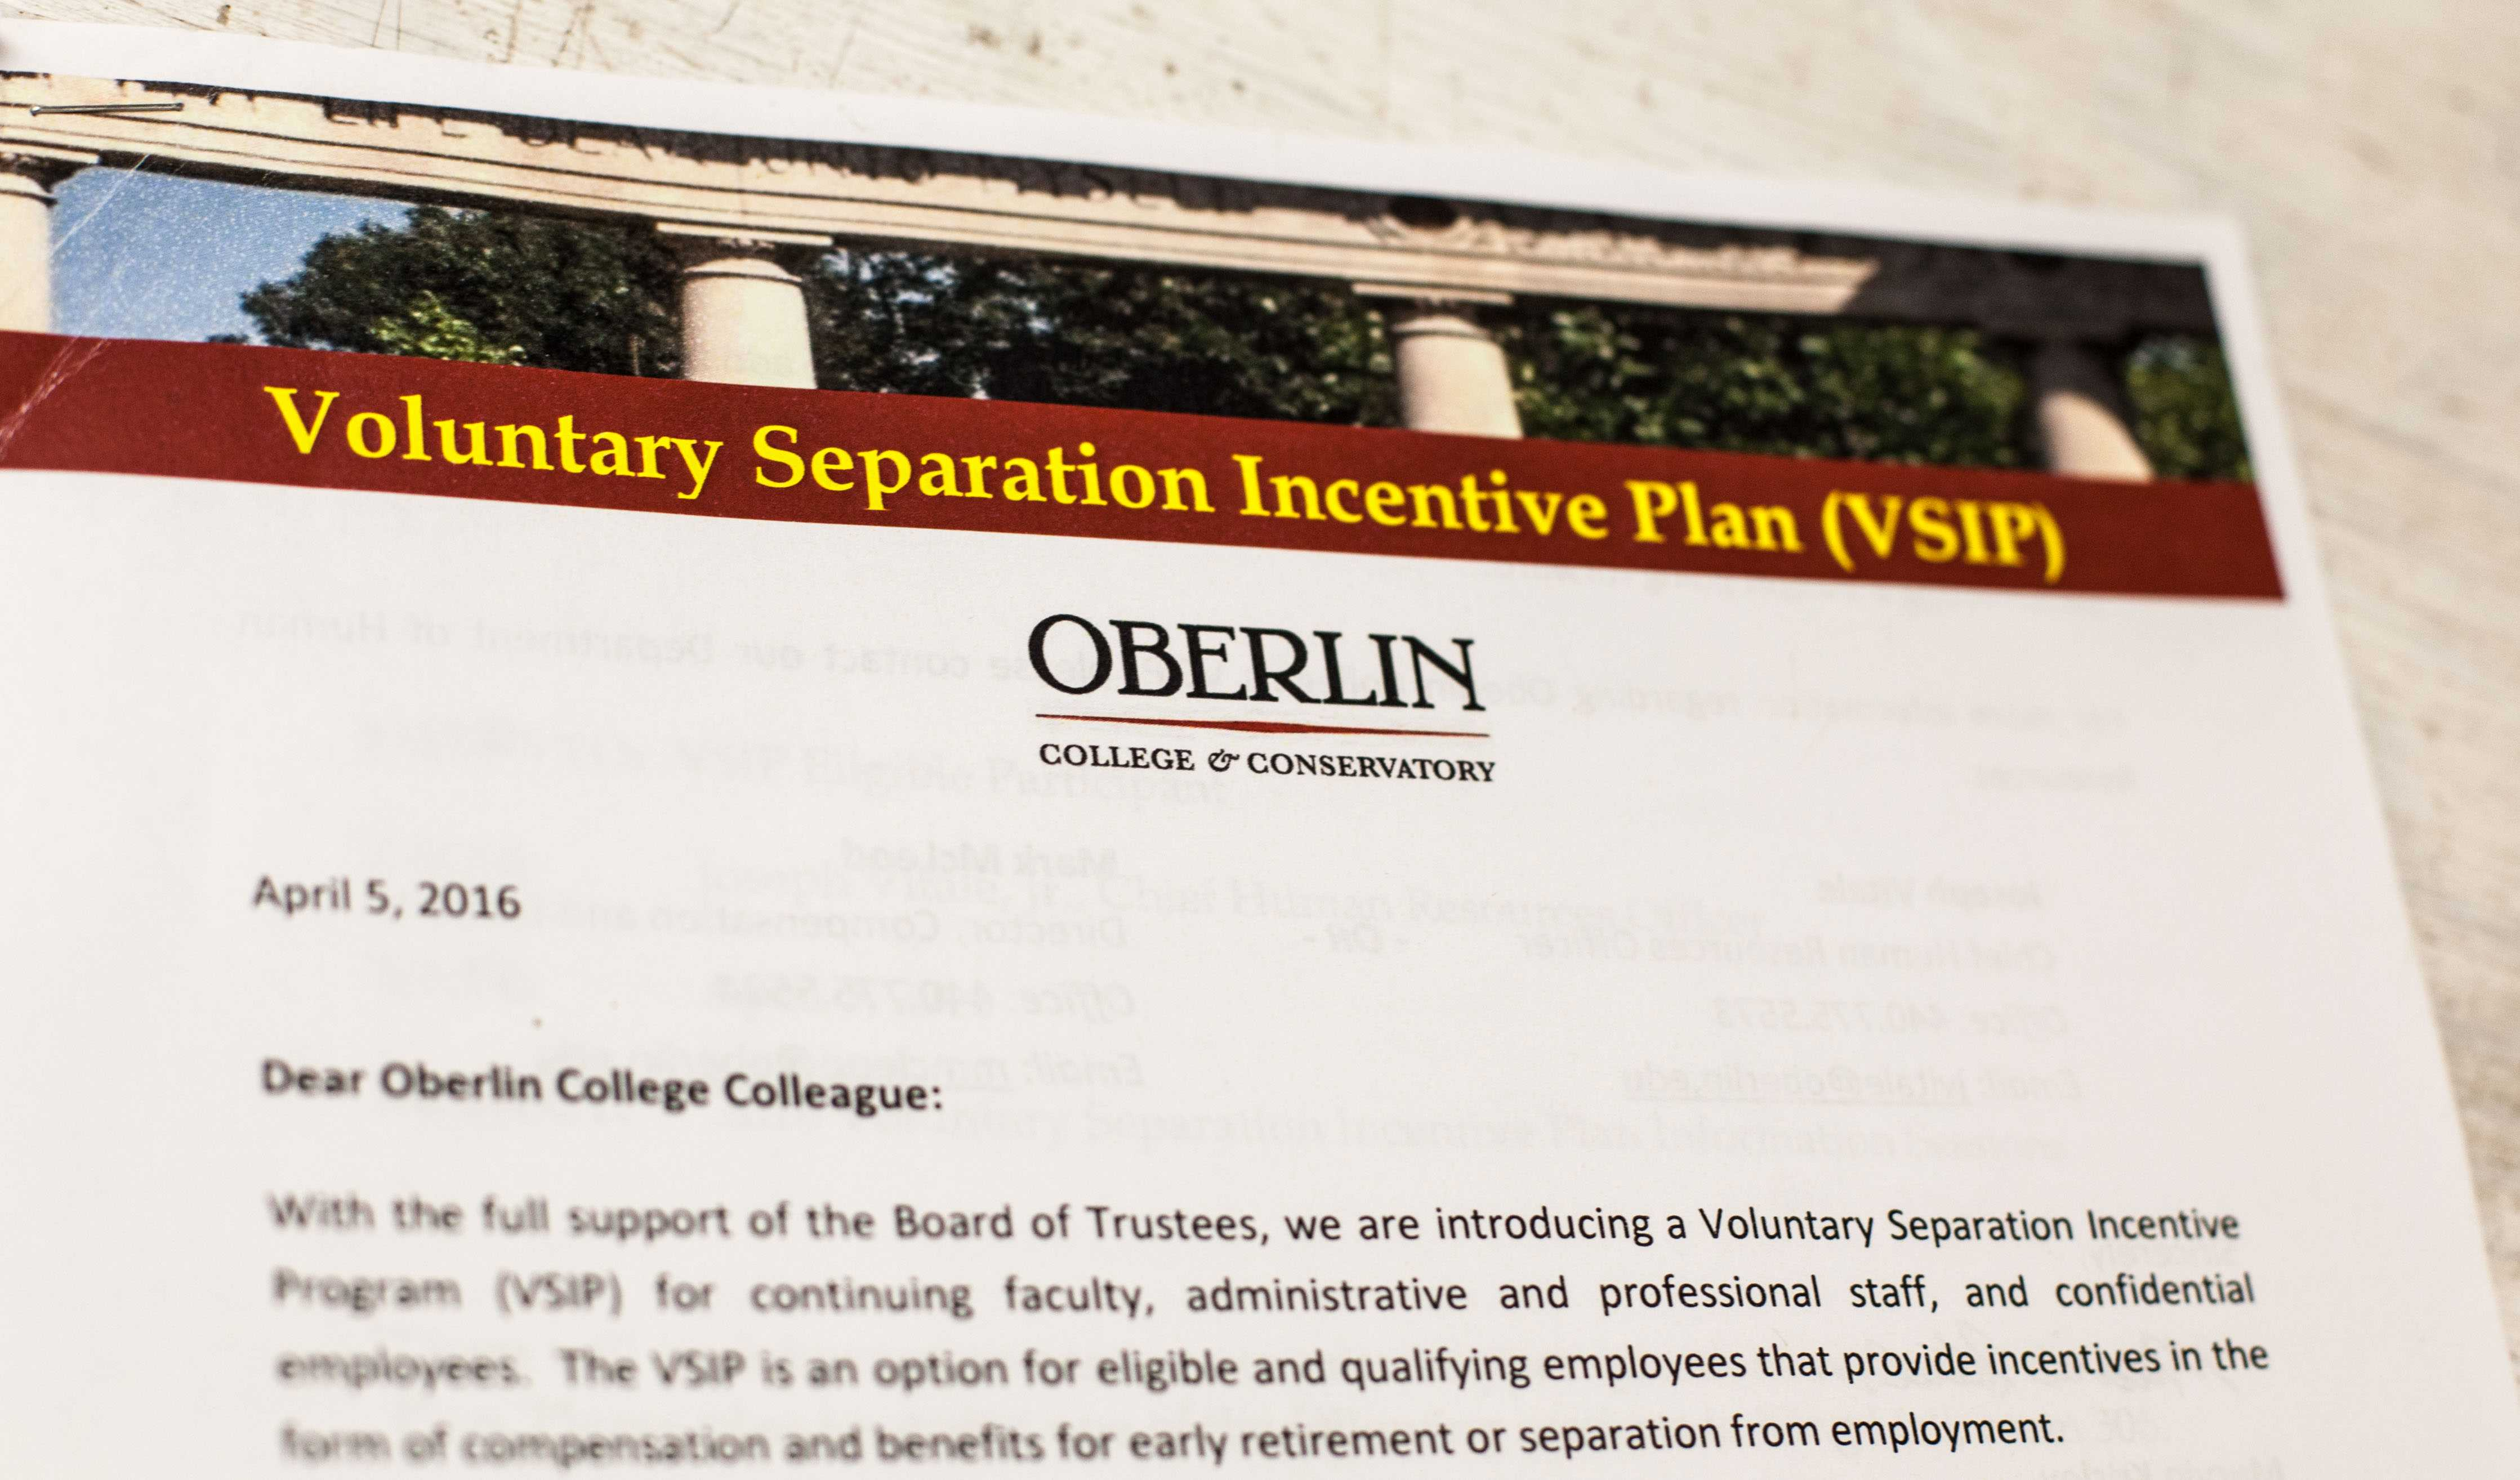 The College's Voluntary Separation Incentive Plan encourages faculty and staff to retire early in exchange for a significant compensation package. This plan is projected to save the College $1.5–3.5 million per year.